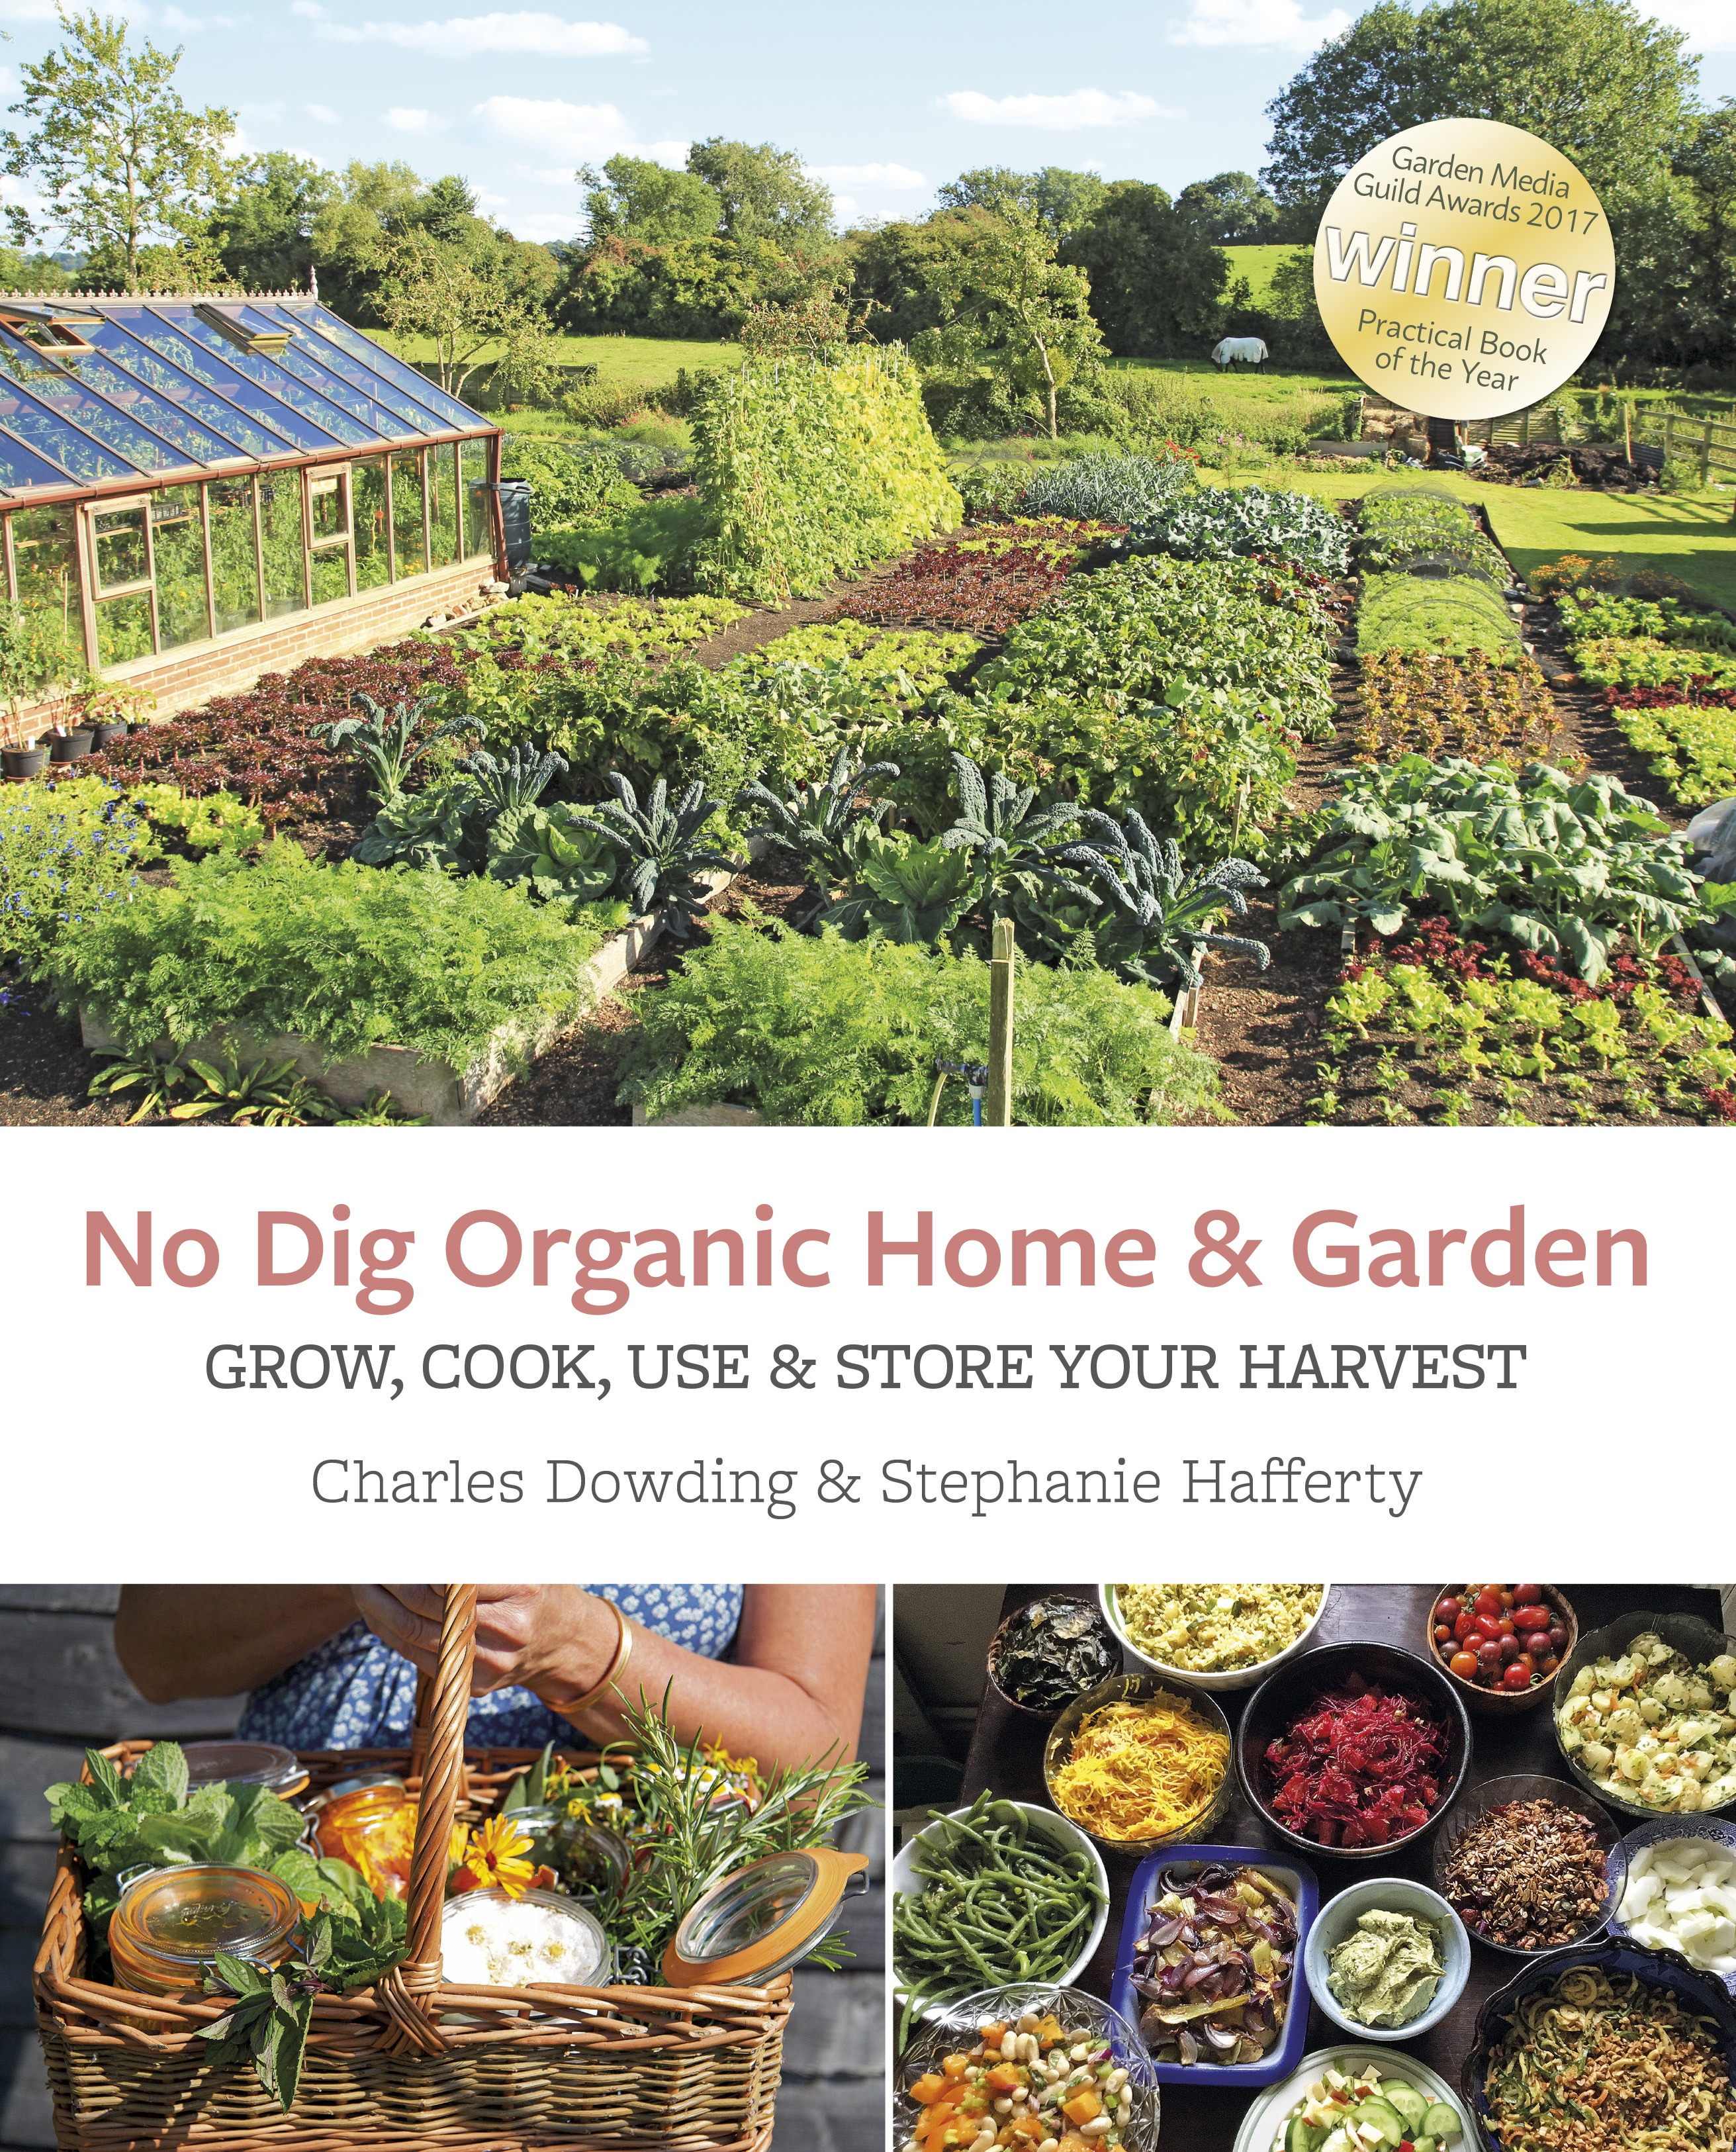 No Dig Organic Home & Garden: Grow, Cook, Use & Store Your Harvest by Charles Dowding & Stephanie Hafferty